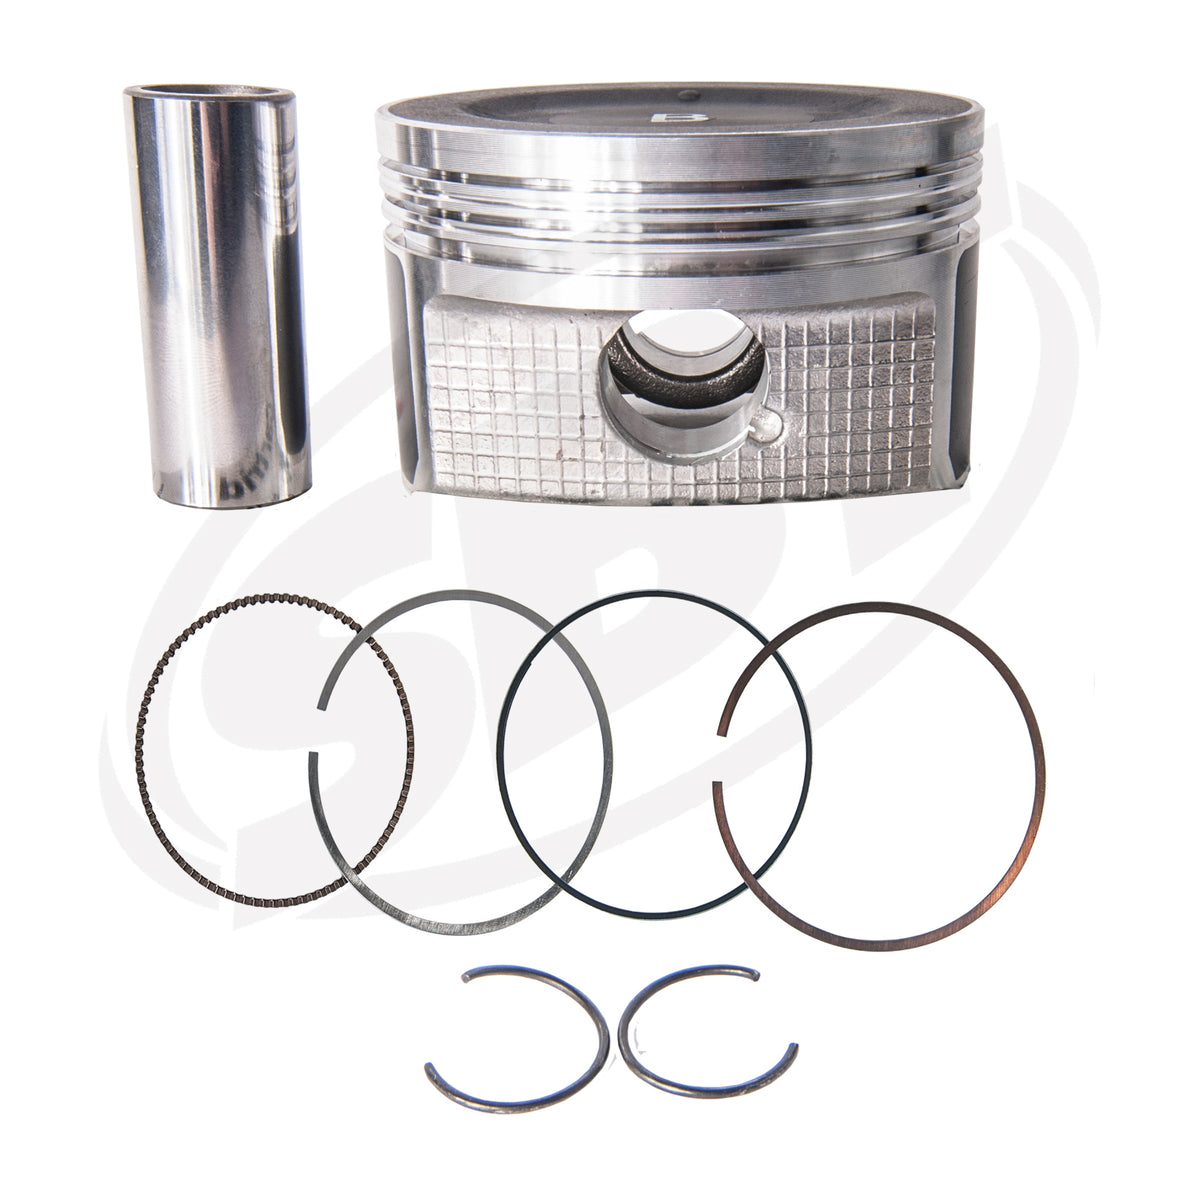 SBT Yamaha Piston & Ring Set 1.8L N /A FX Cruiser HO /FX